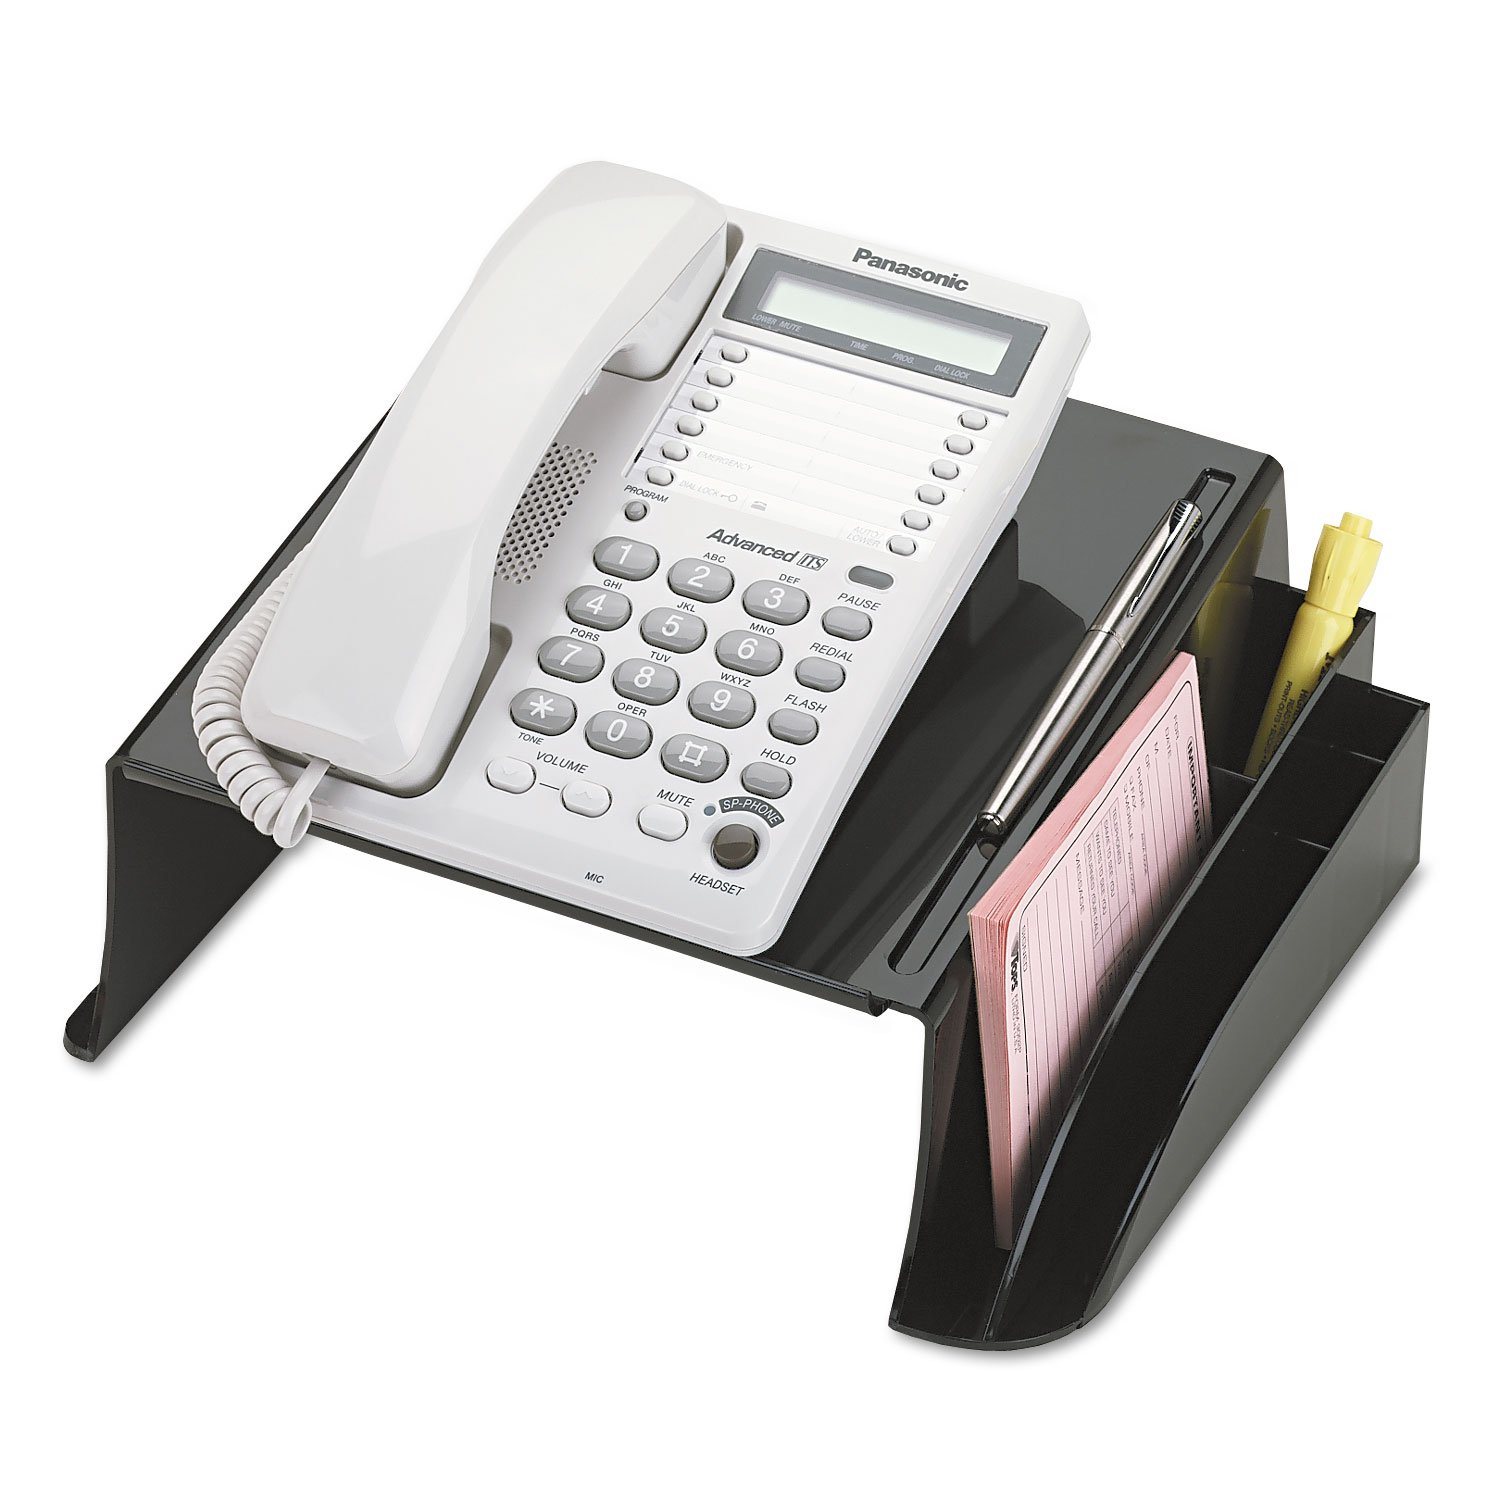 OIC22802-2200 Series Telephone Stand by Officemate